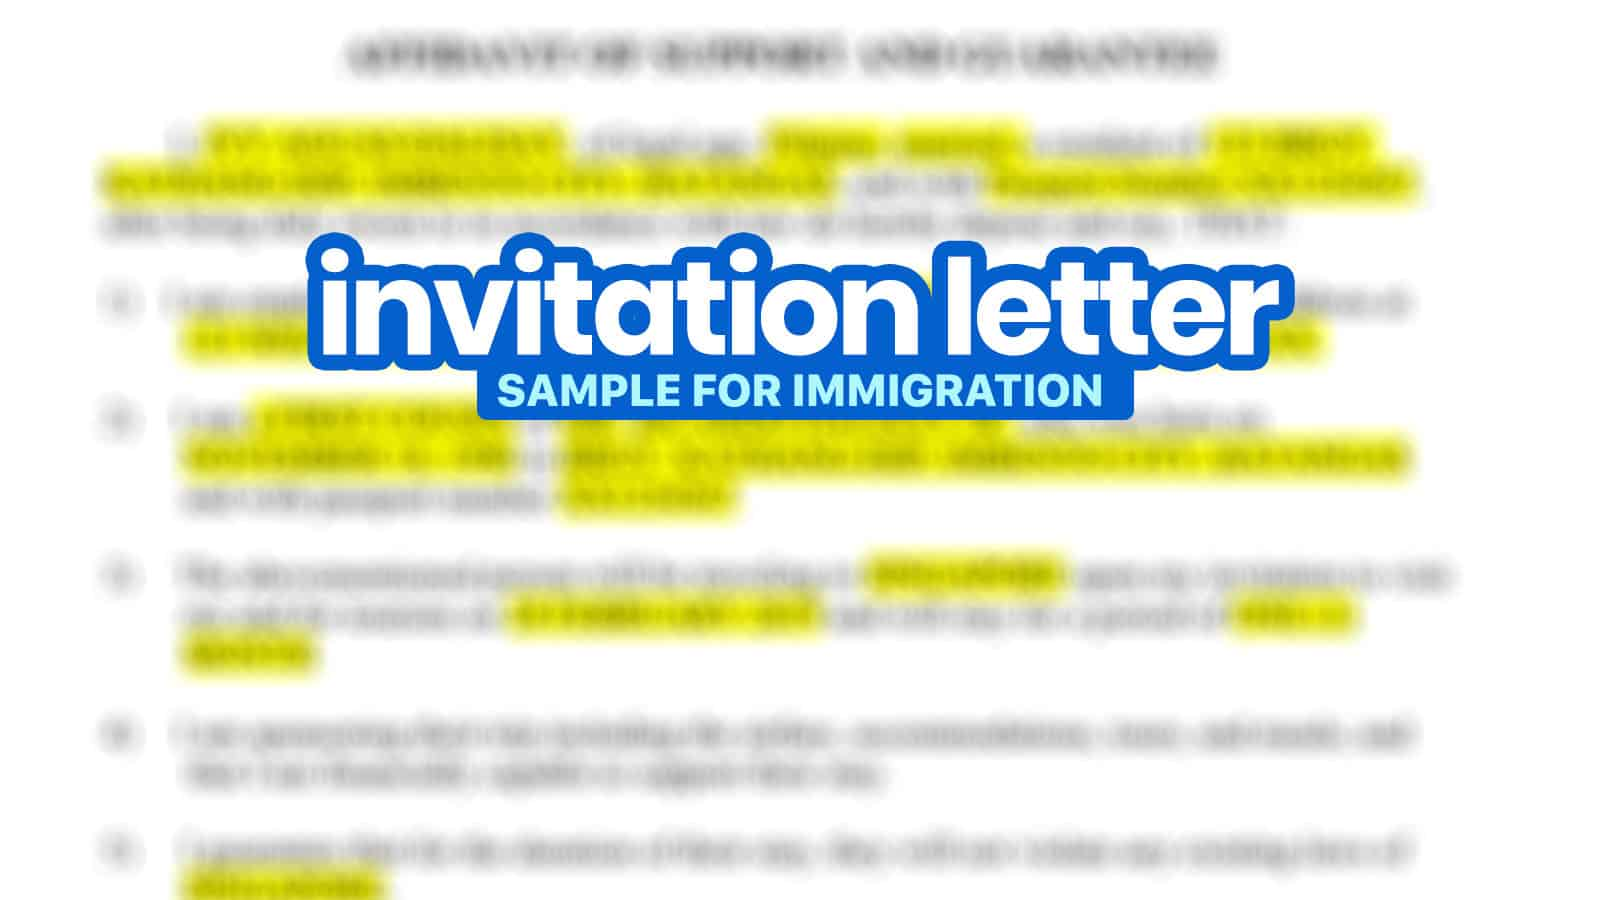 Sample INVITATION LETTER FOR IMMIGRATION: Affidavit of Support and Guarantee